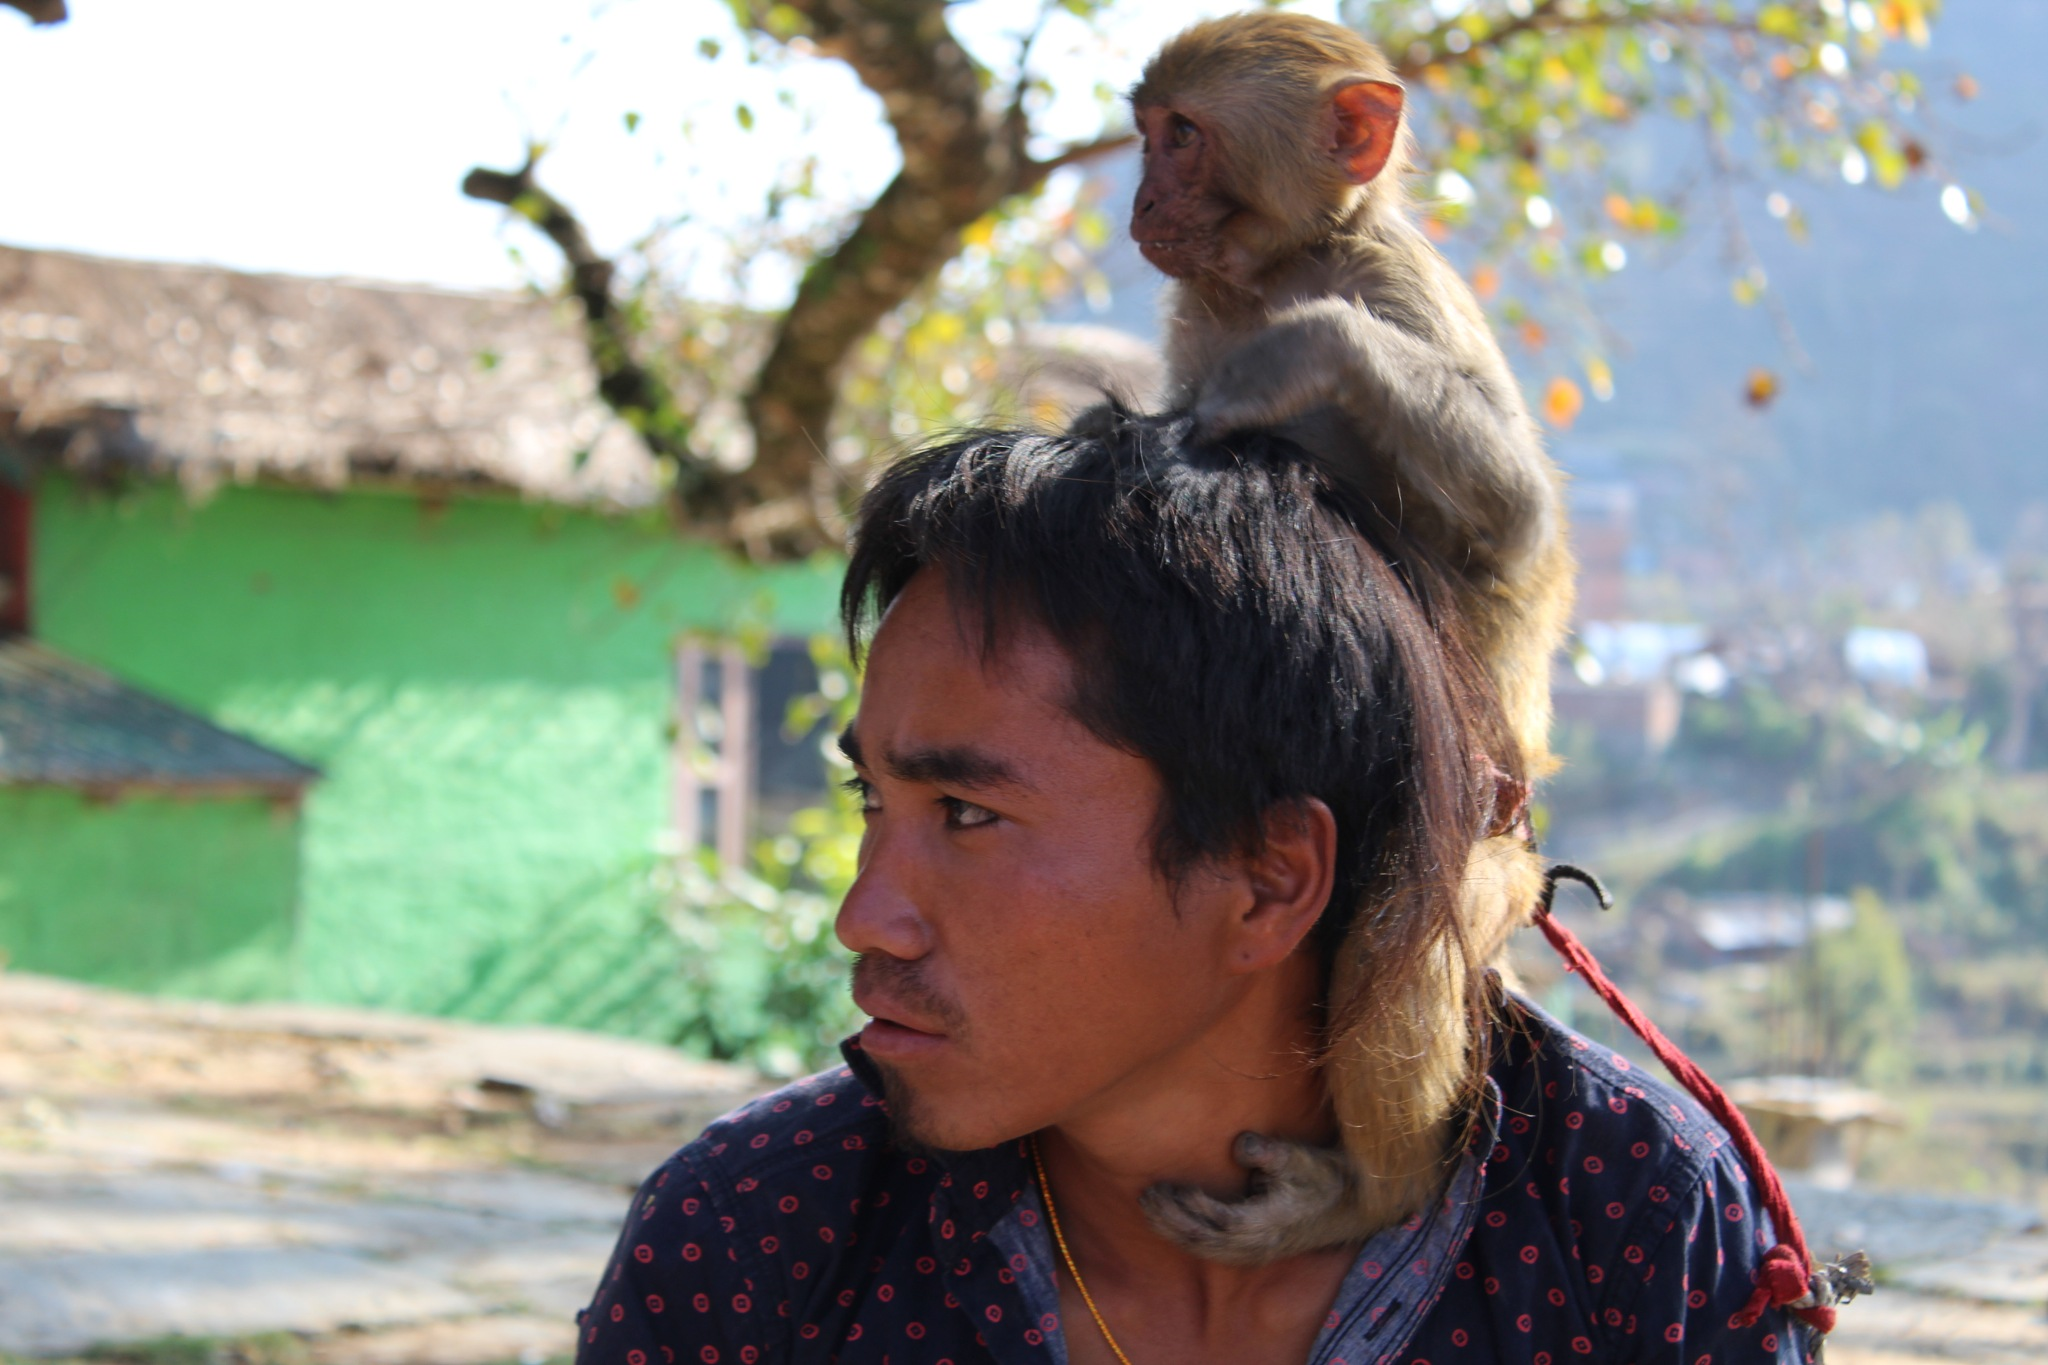 Monkey Pet by Anup Hada